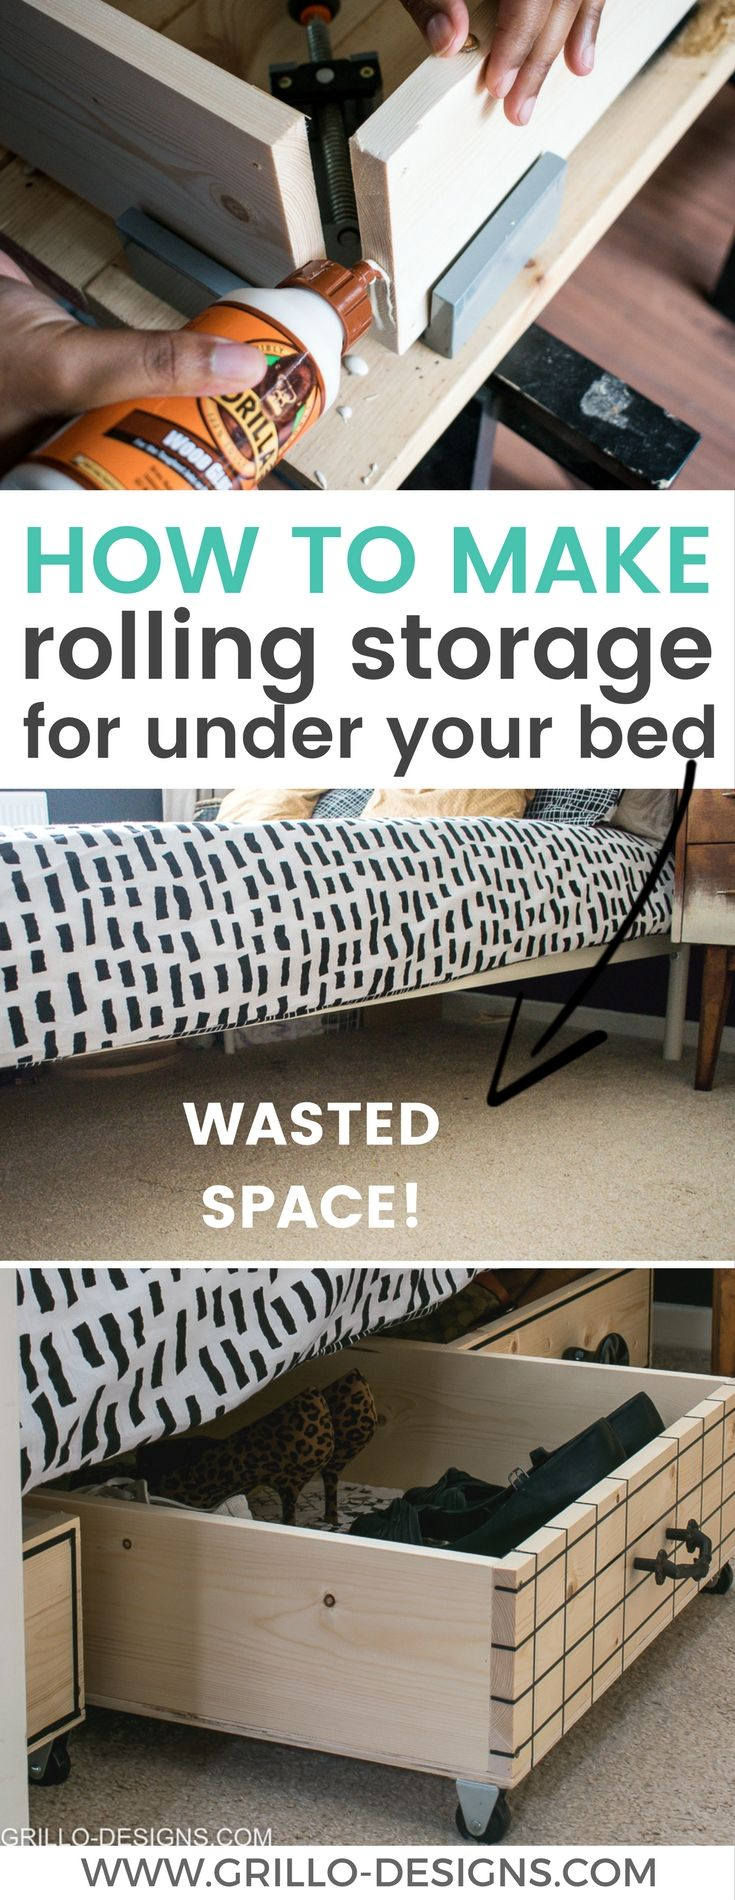 Diy under bed storage boxes and a knobs guide fyi pinterest